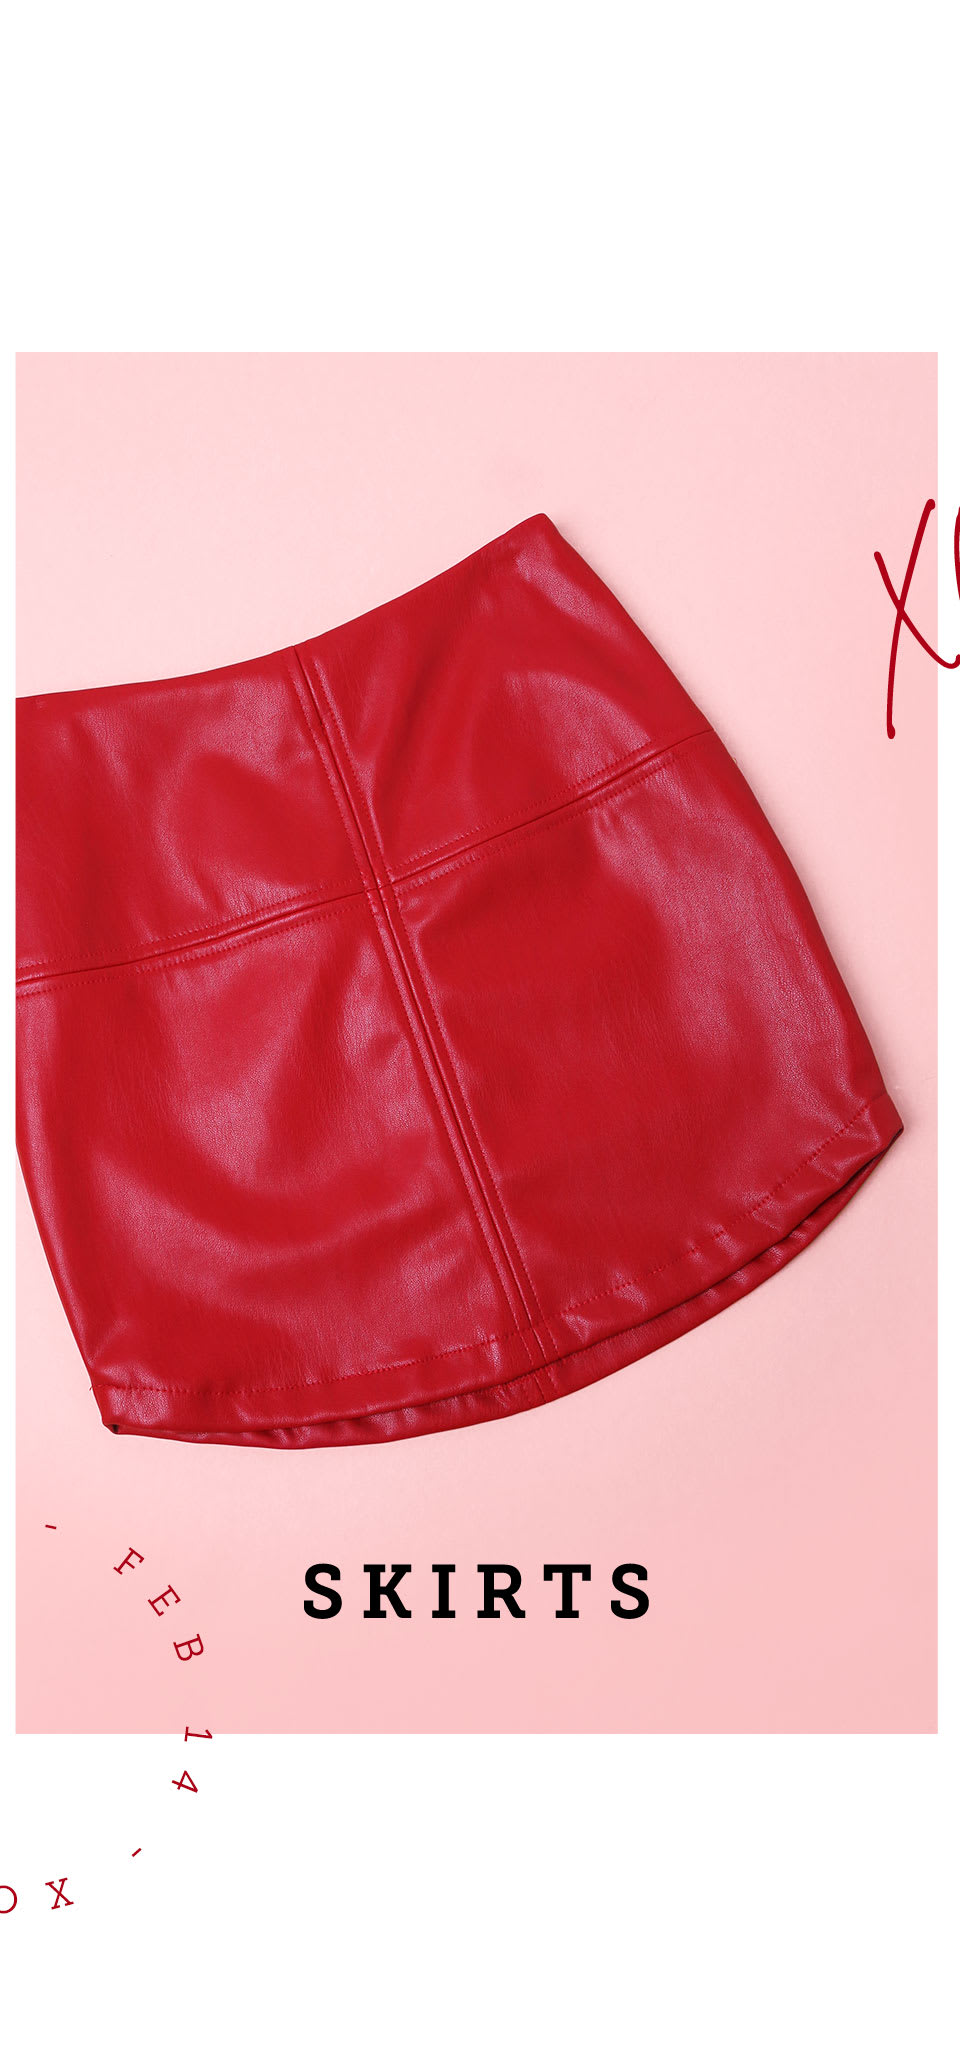 Shop Maxi Skirts, Mini Skirts, and Pencil Skirts for Women.